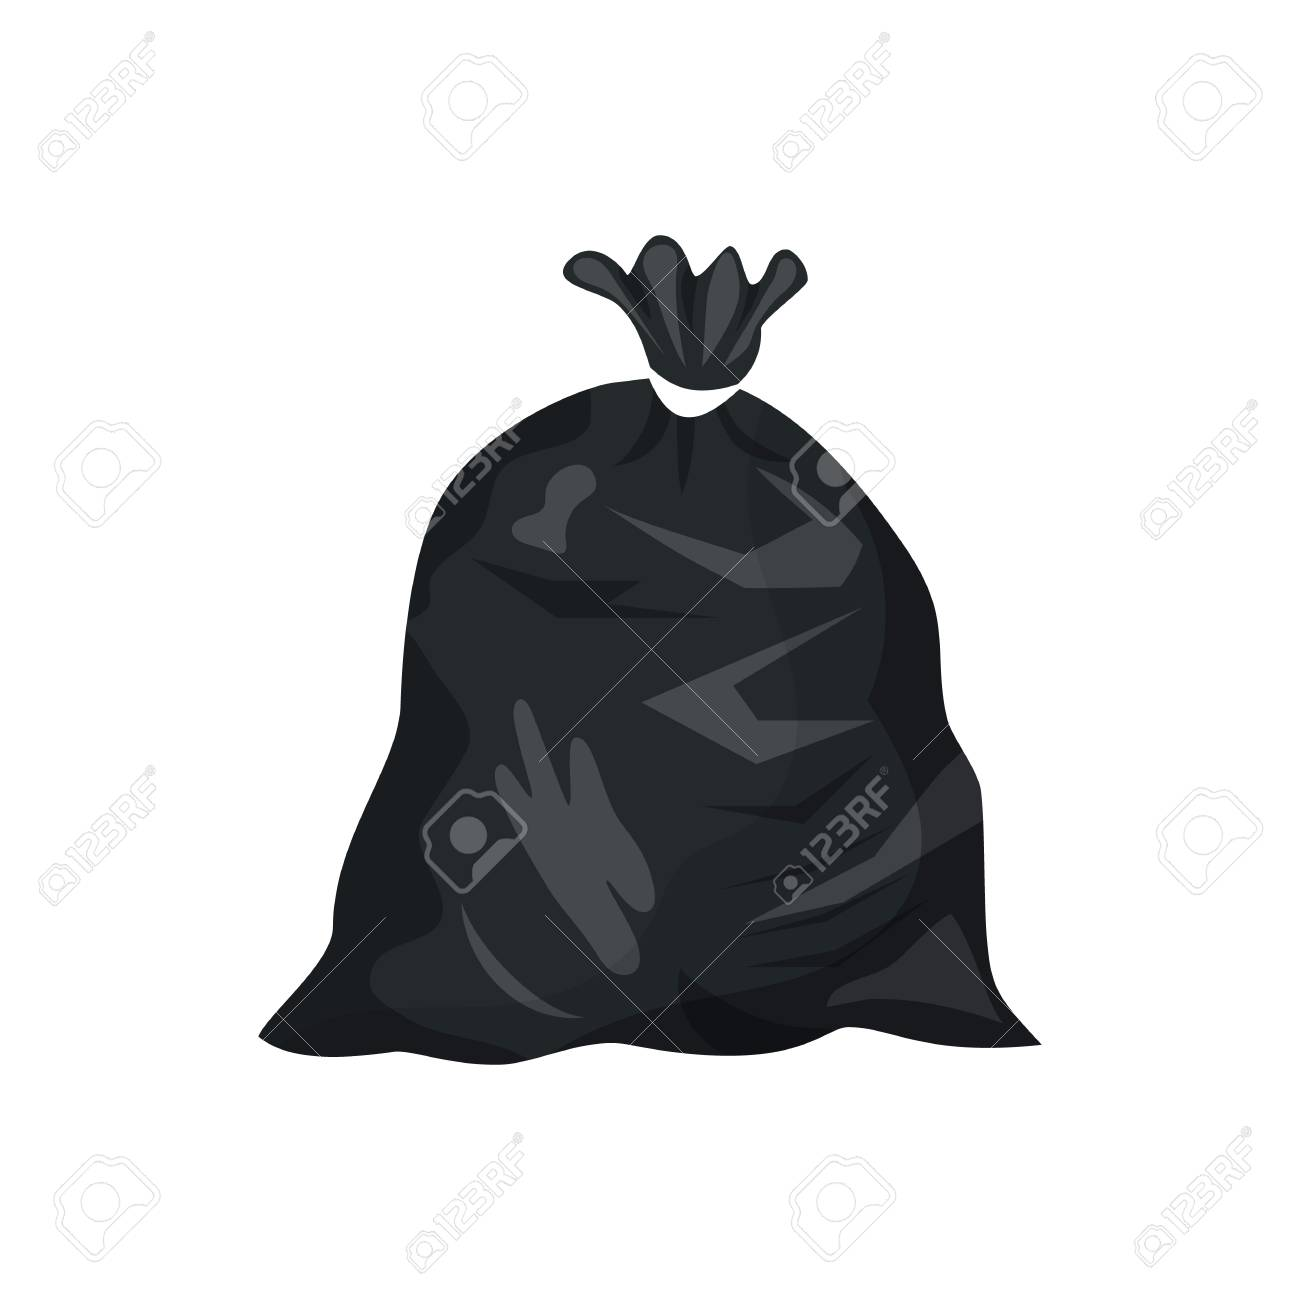 Plastic garbage bag icon. Container for trash isolated on white.